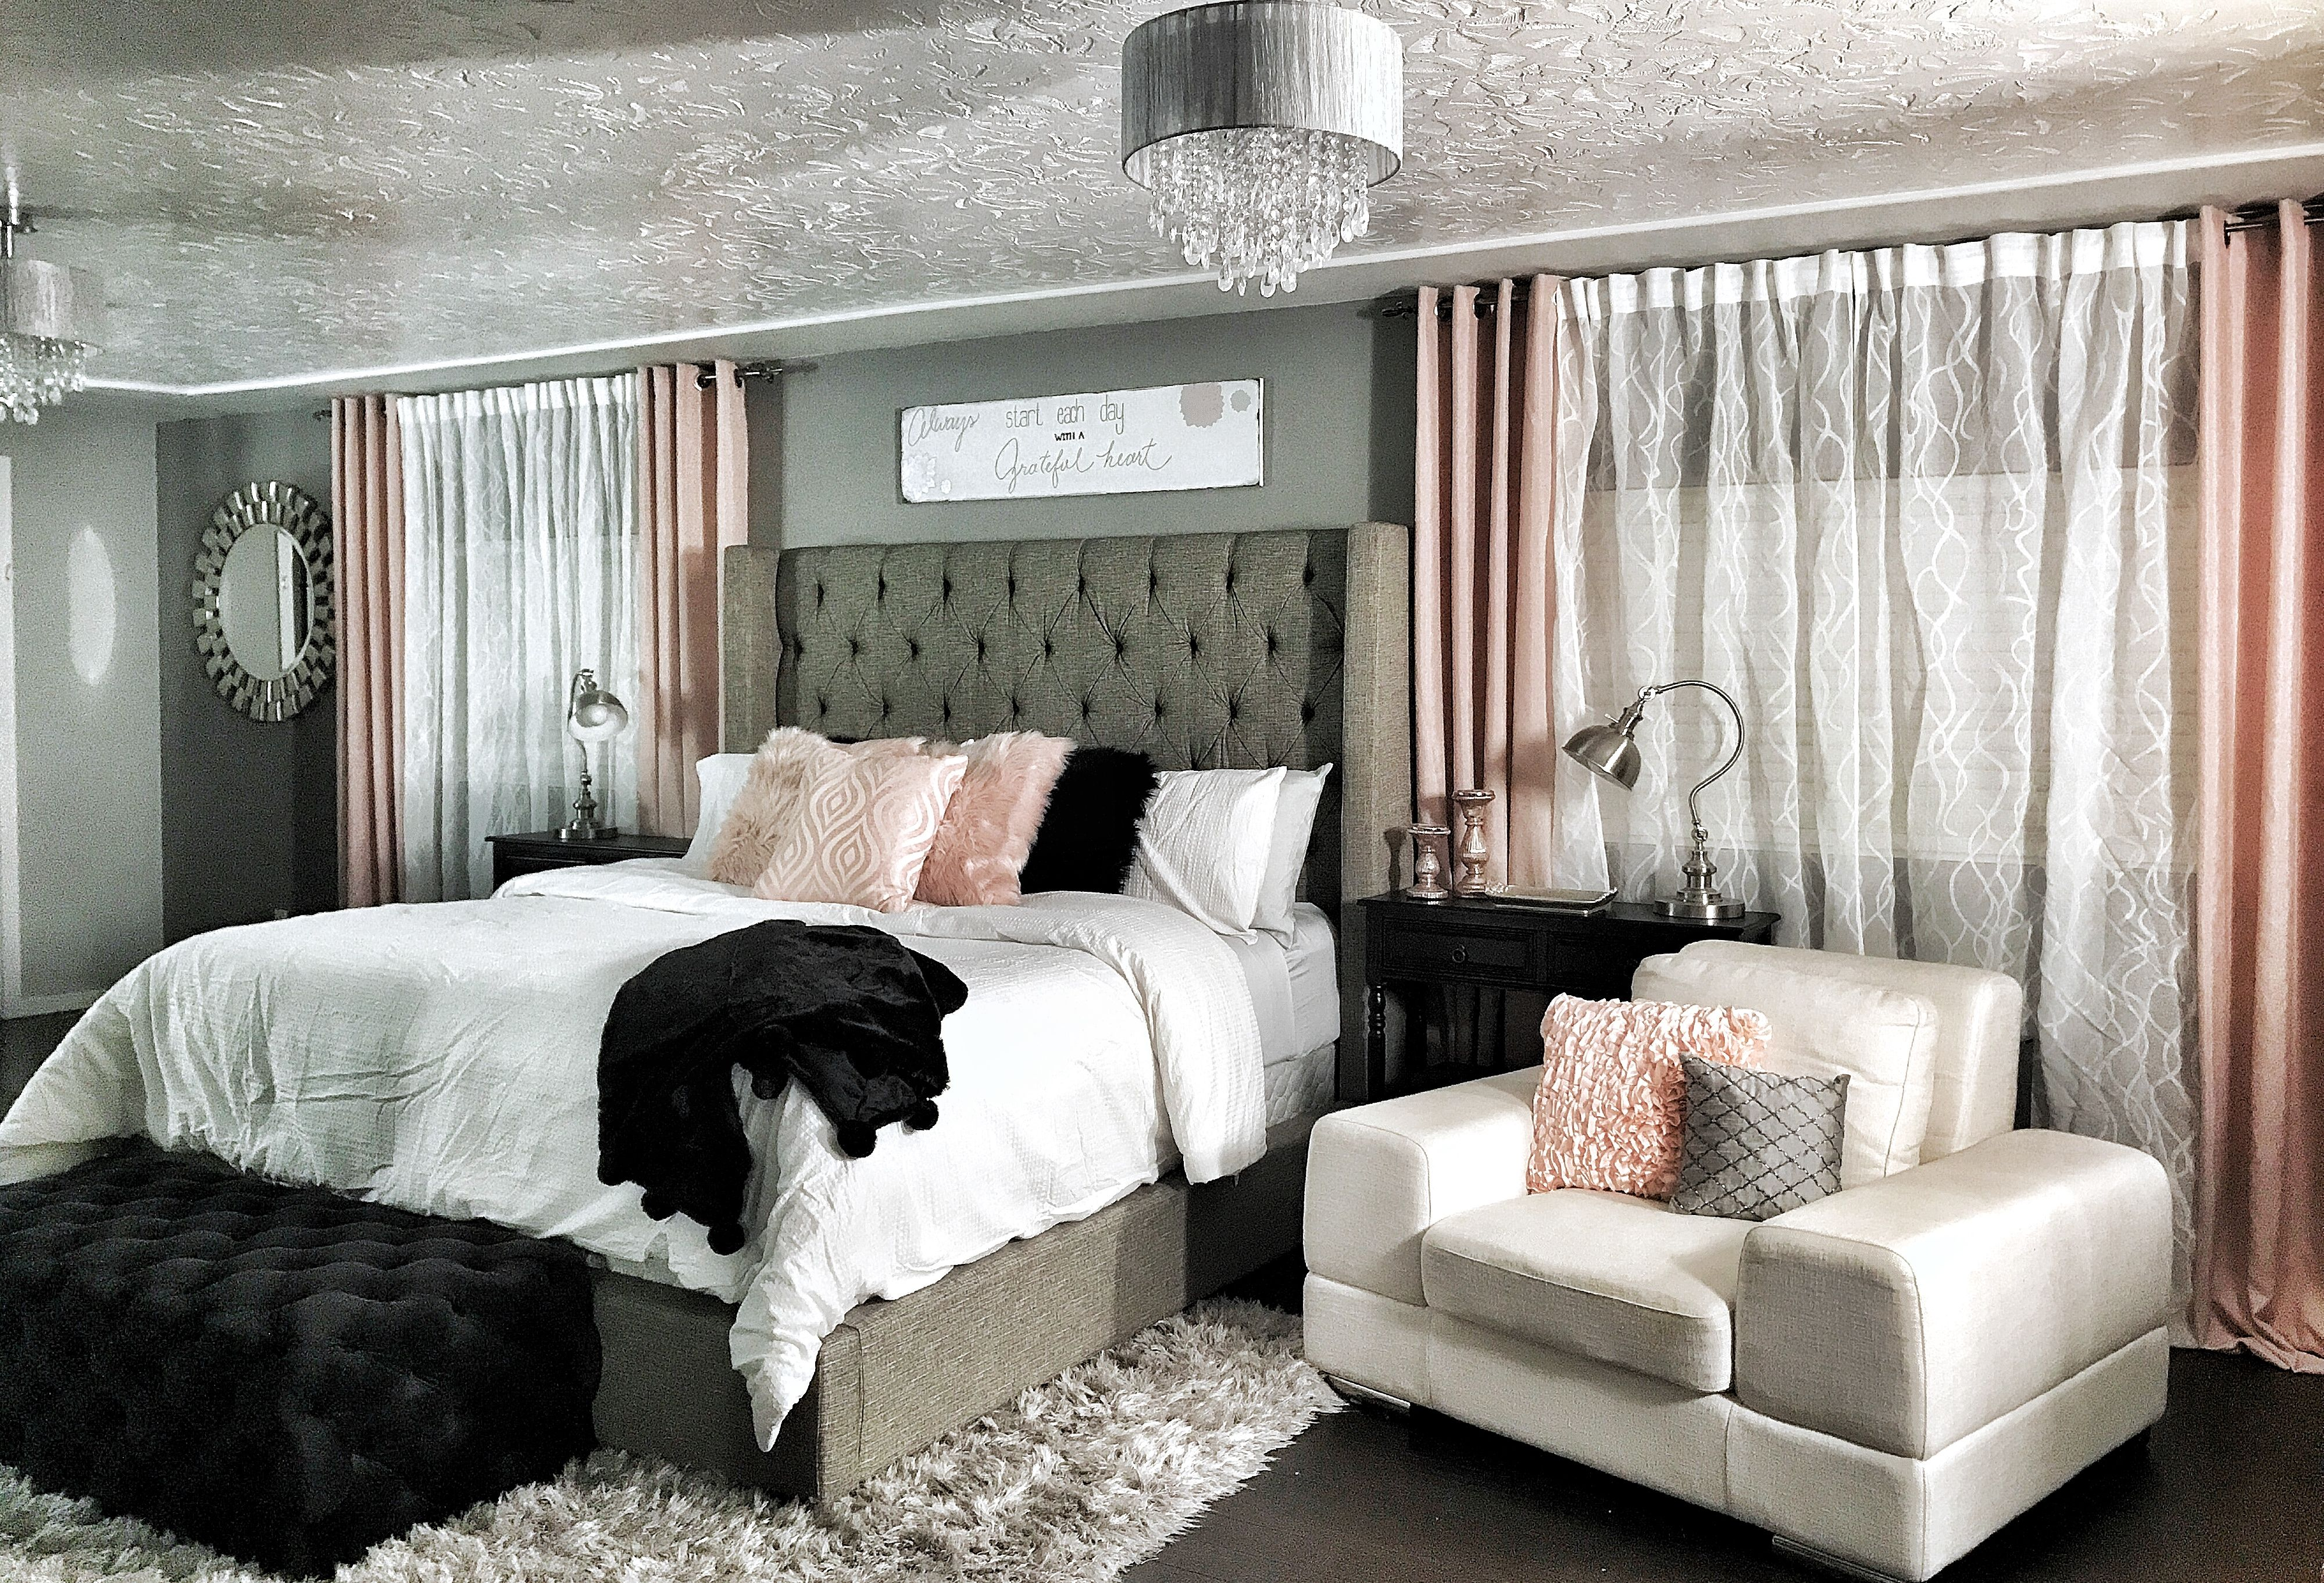 Master Bedroom Dramatic Wing Back Bed Champagne Rose Gold Pink Blush With Greys And Bla Room Decor Bedroom Rose Gold Black Bedroom Decor Rose Gold Bedroom